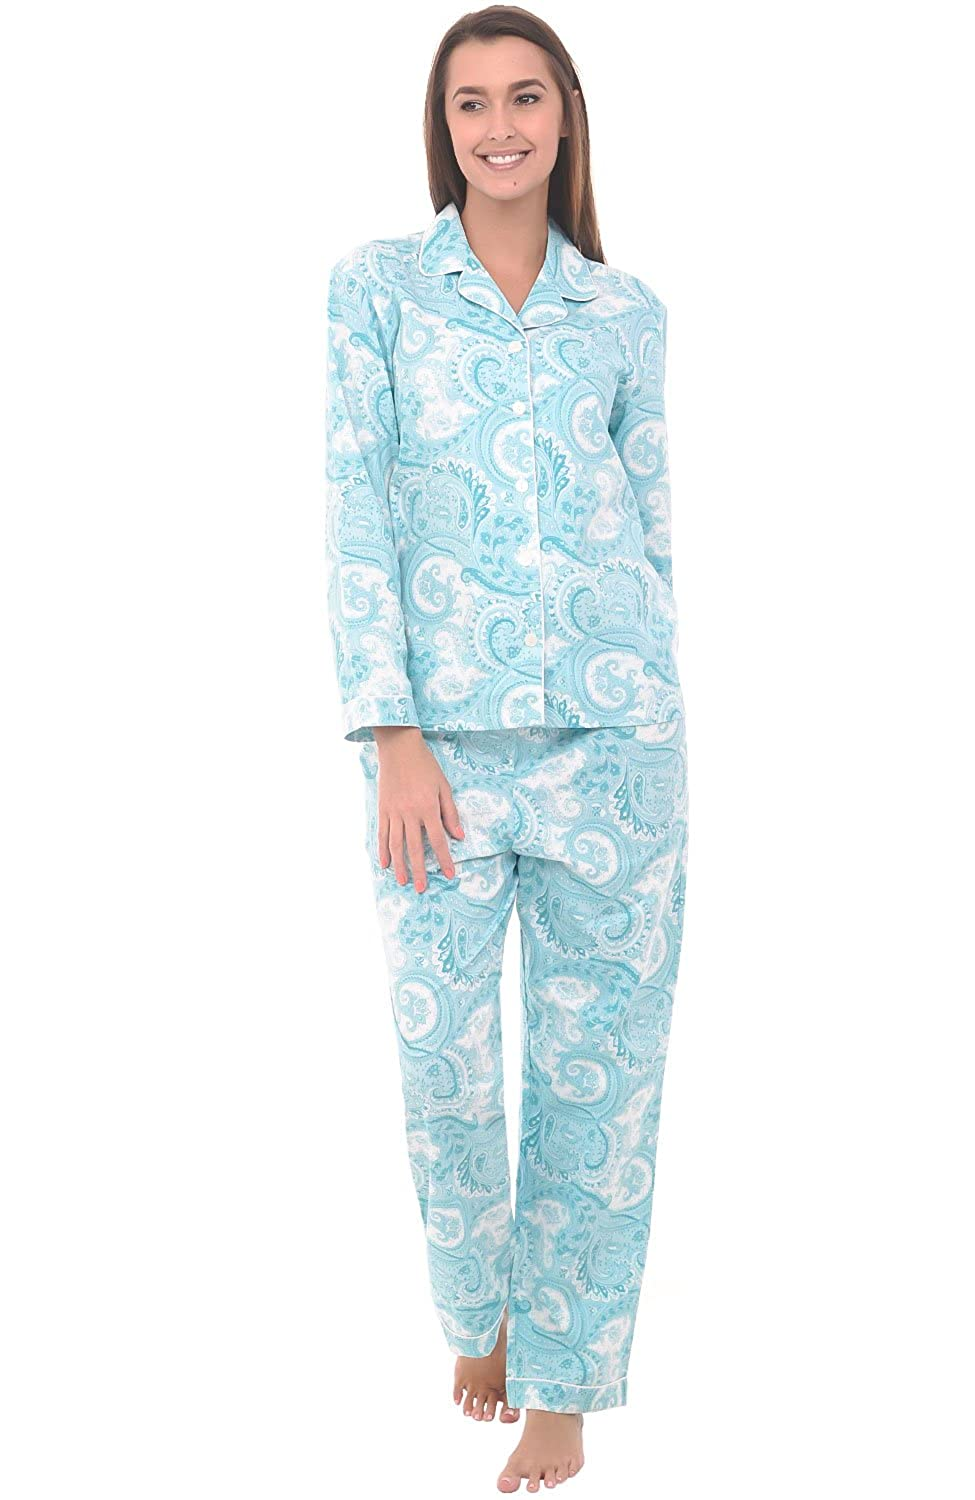 Del Rossa Women's Cotton Pajamas, Long Woven Pj Set